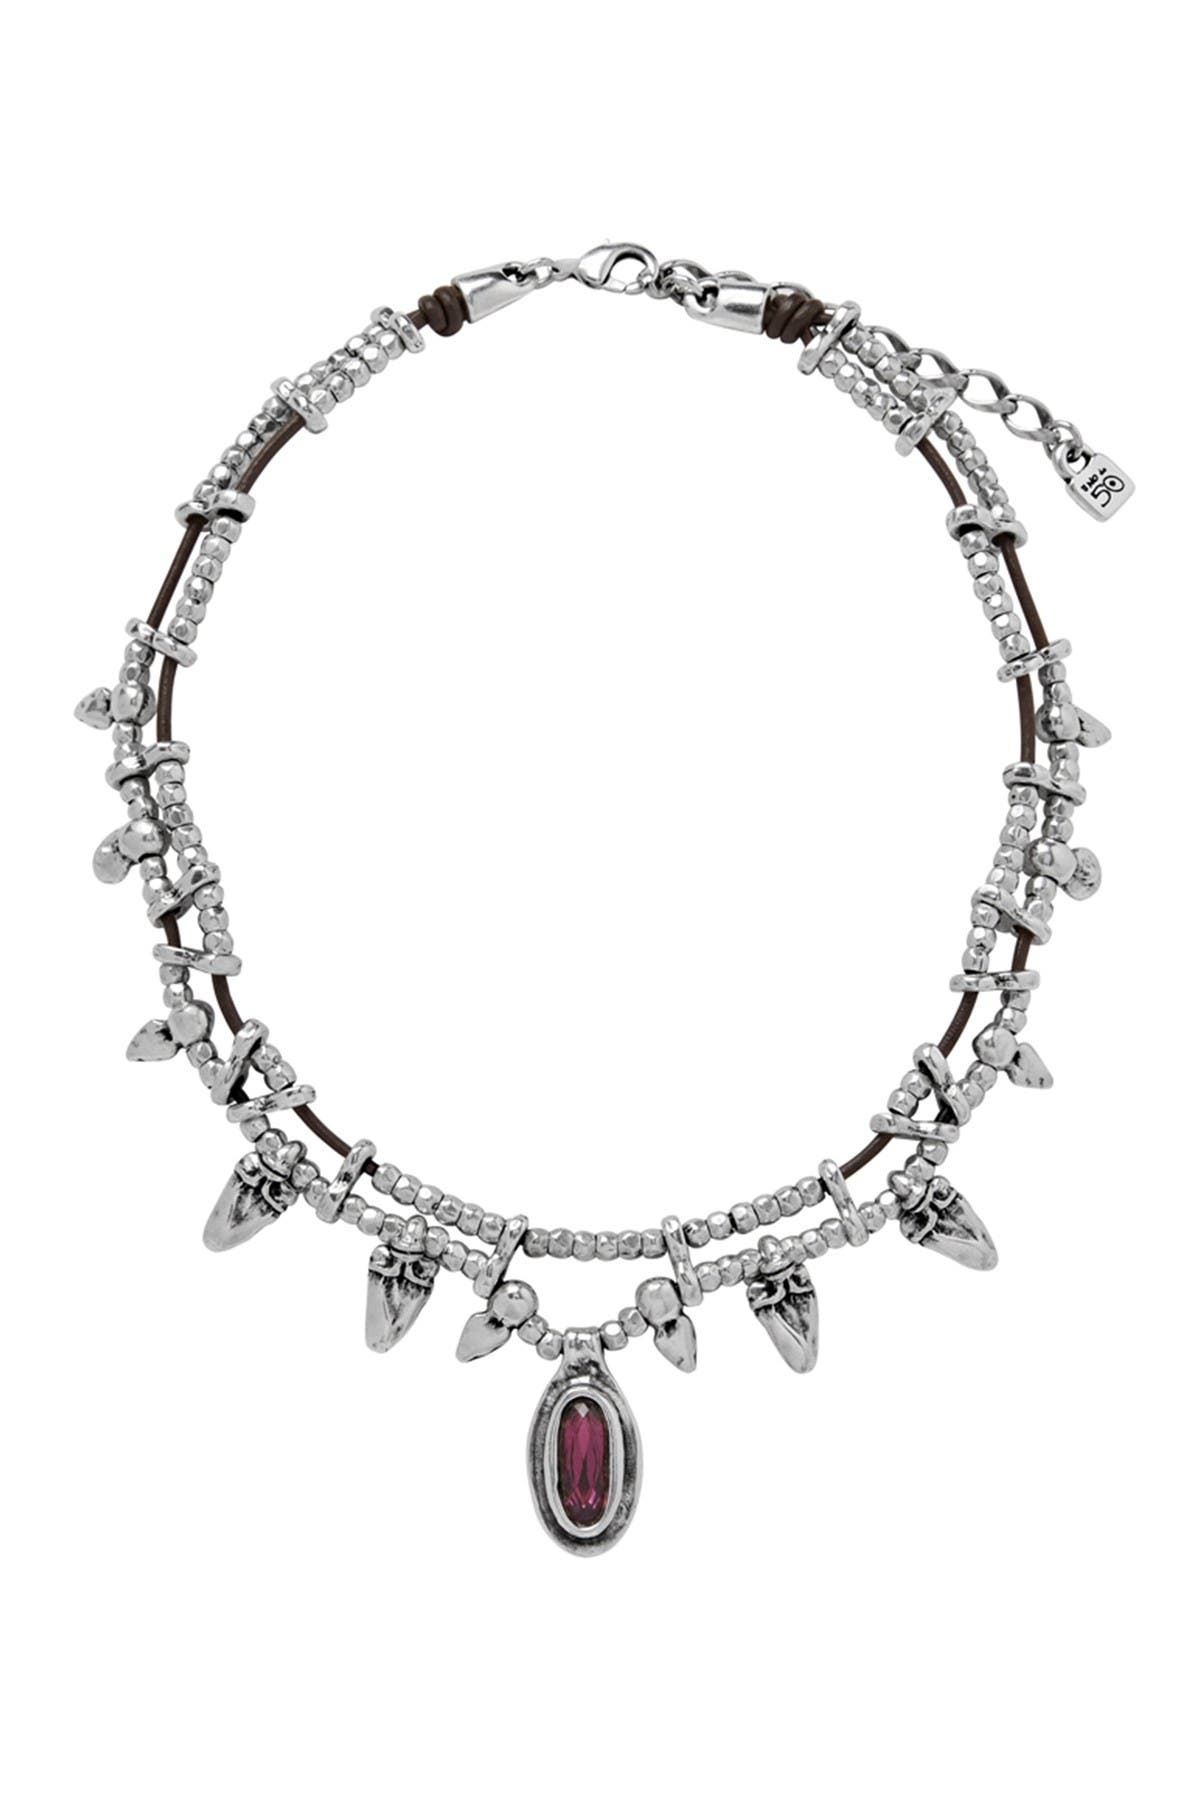 Image of Uno De 50 Stronger Bezel Set Swarovski Element Accented Fringe Collar Necklace